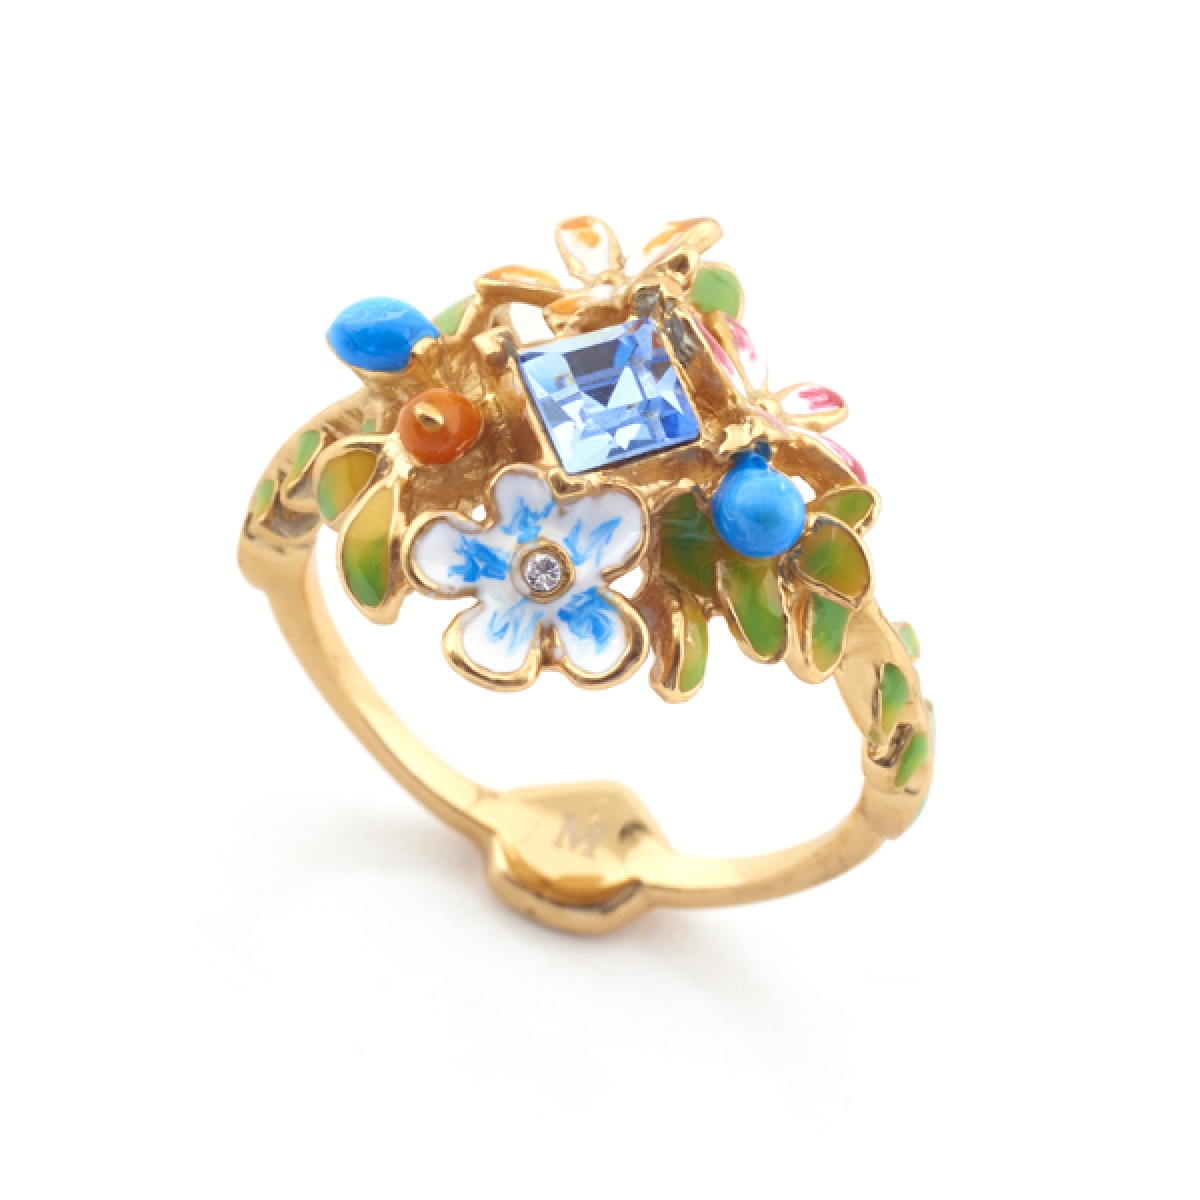 Orangutan Floral Crystal Ring - Large Size Only